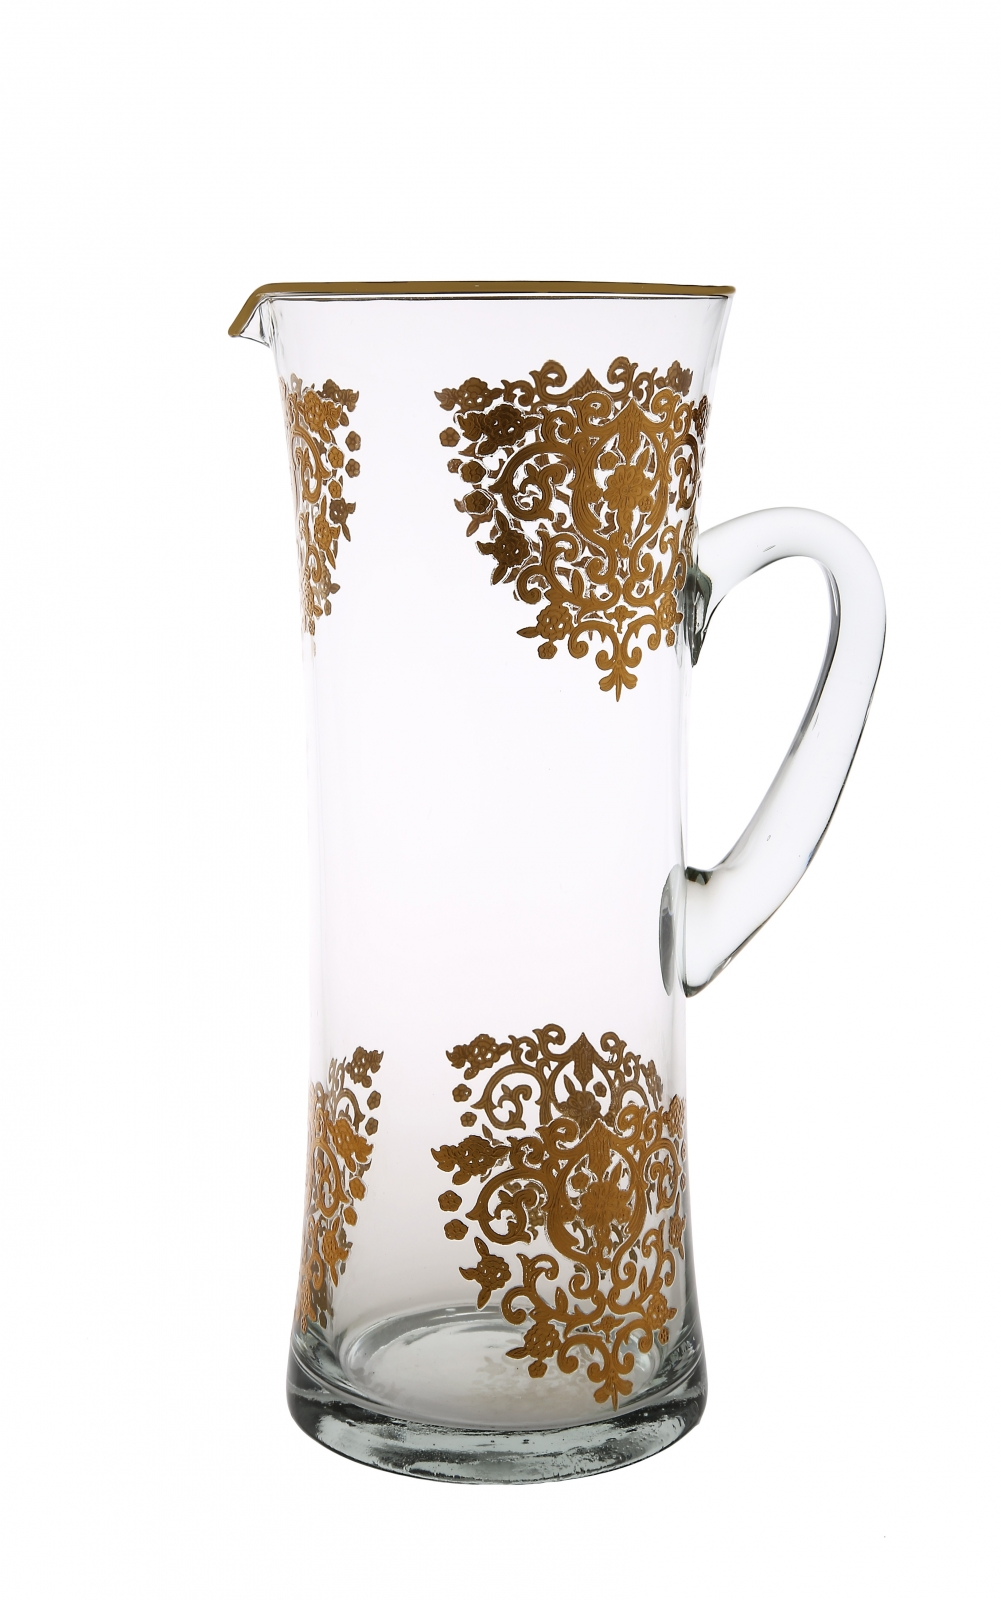 Glass water pitcher with rich gold artwork